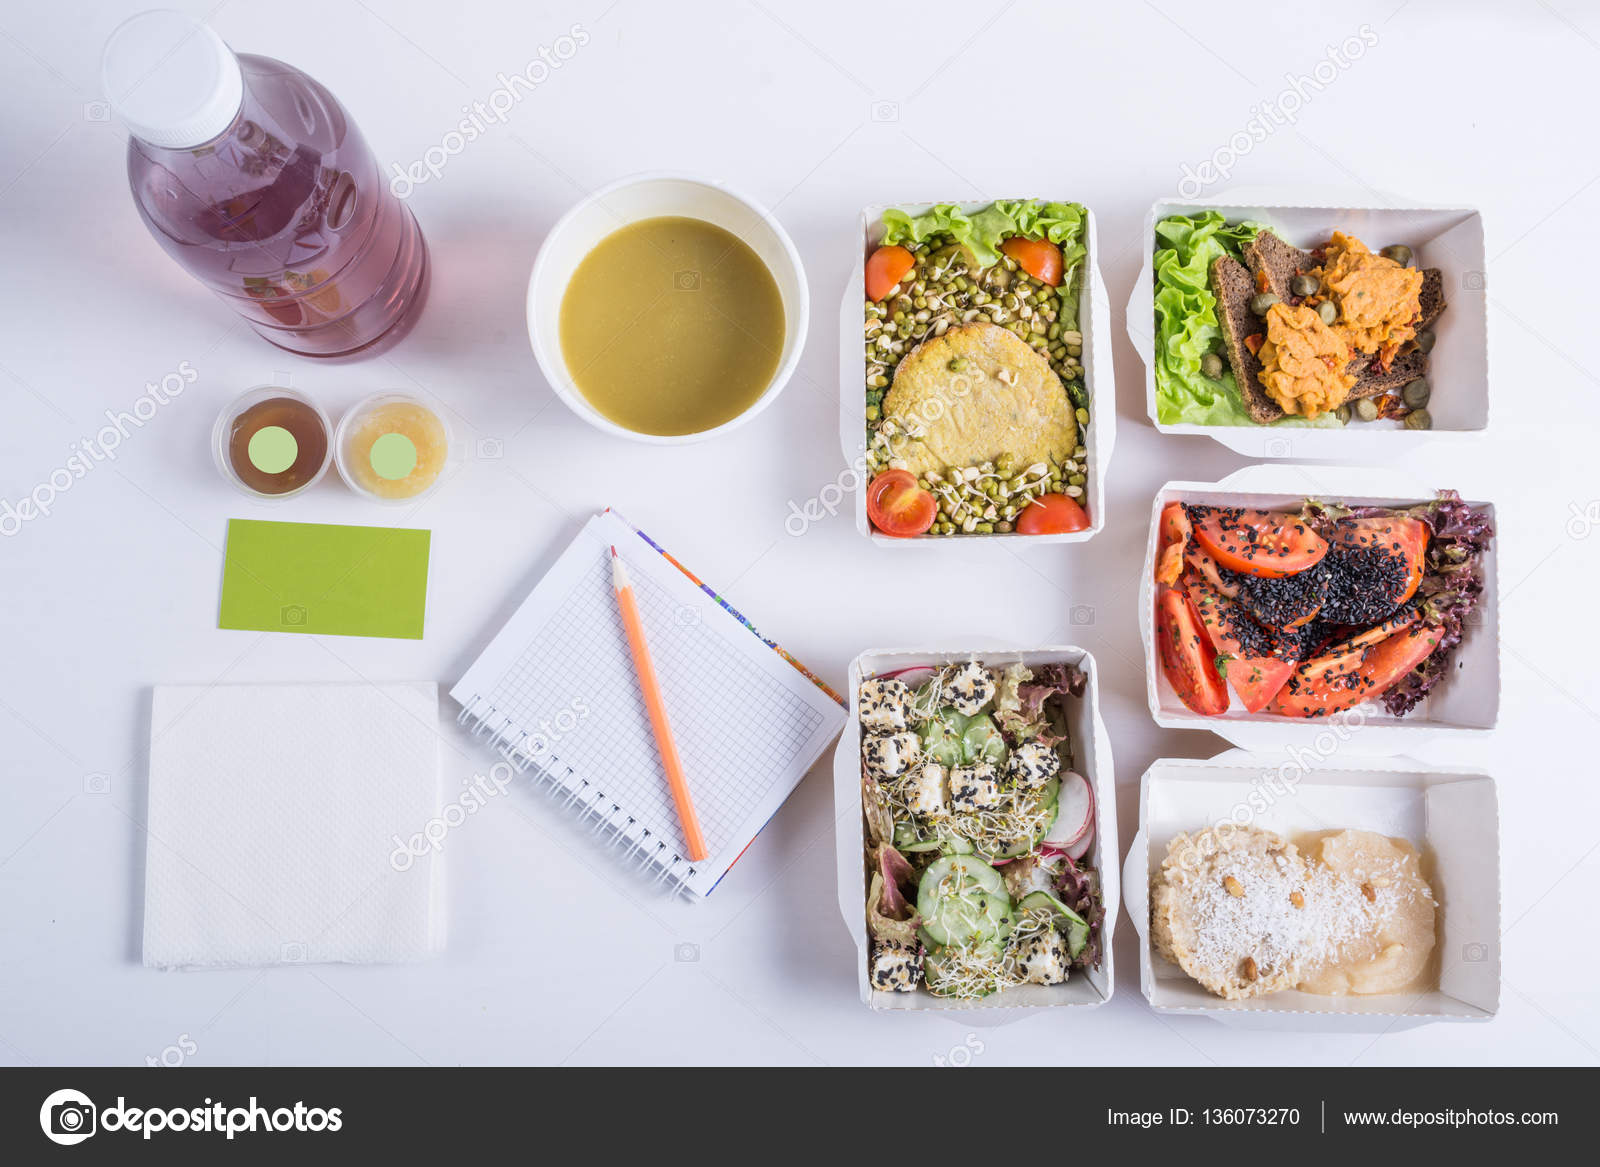 Healthy food delivery business plan